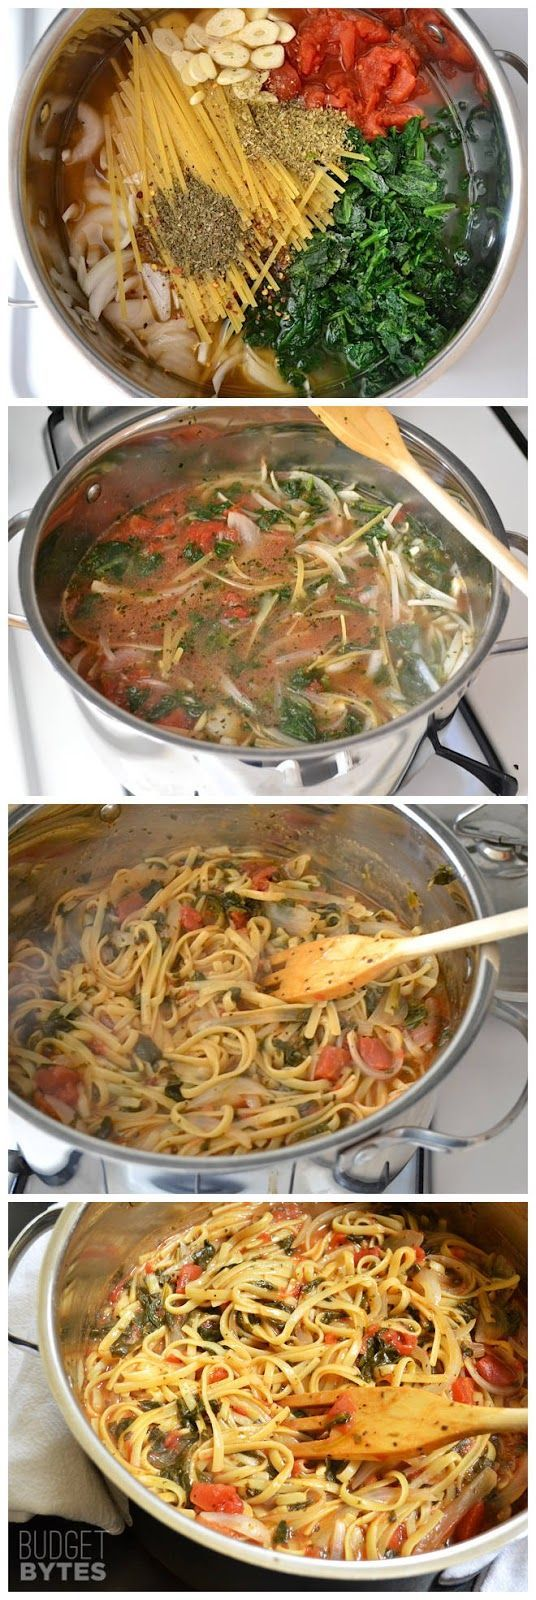 Italian Wonderpot:  4 cups vegetable broth 2 Tbsp olive oil 12 oz. fettuccine 8 oz. frozen chopped spinach 1 (28 oz.) can diced tomatoes 1 medium onion 4 cloves garlic ½ Tbsp dried basil ½ Tbsp dried oregano ¼ tsp red pepper flakes freshly cracked pepper to taste 2 oz. feta cheese -